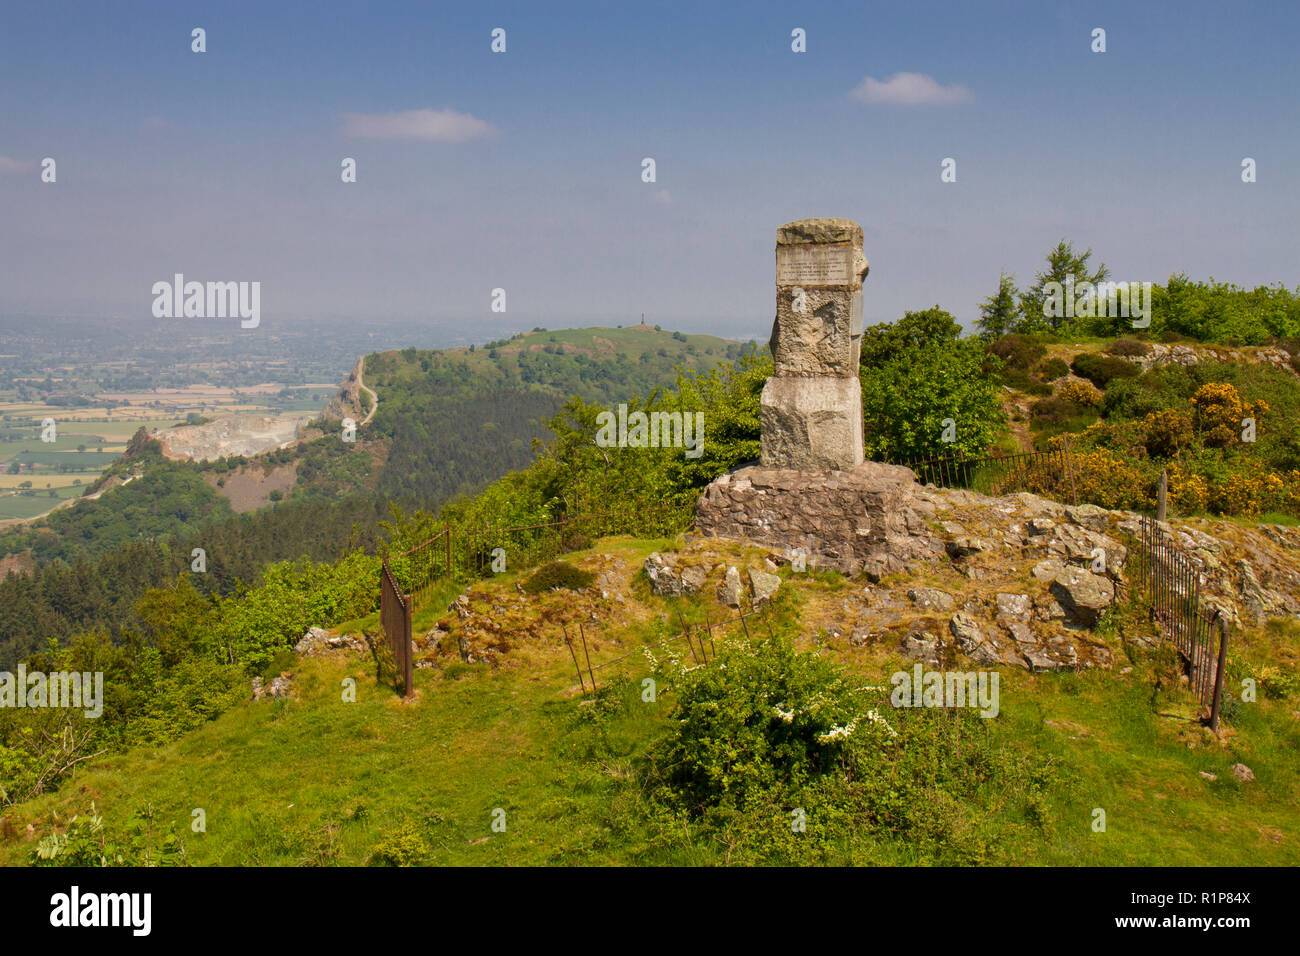 Monument to the Romany Chell Uriah Burton. On Moel y Golfa, Breidden Hills, Powys, Wales. May - Stock Image